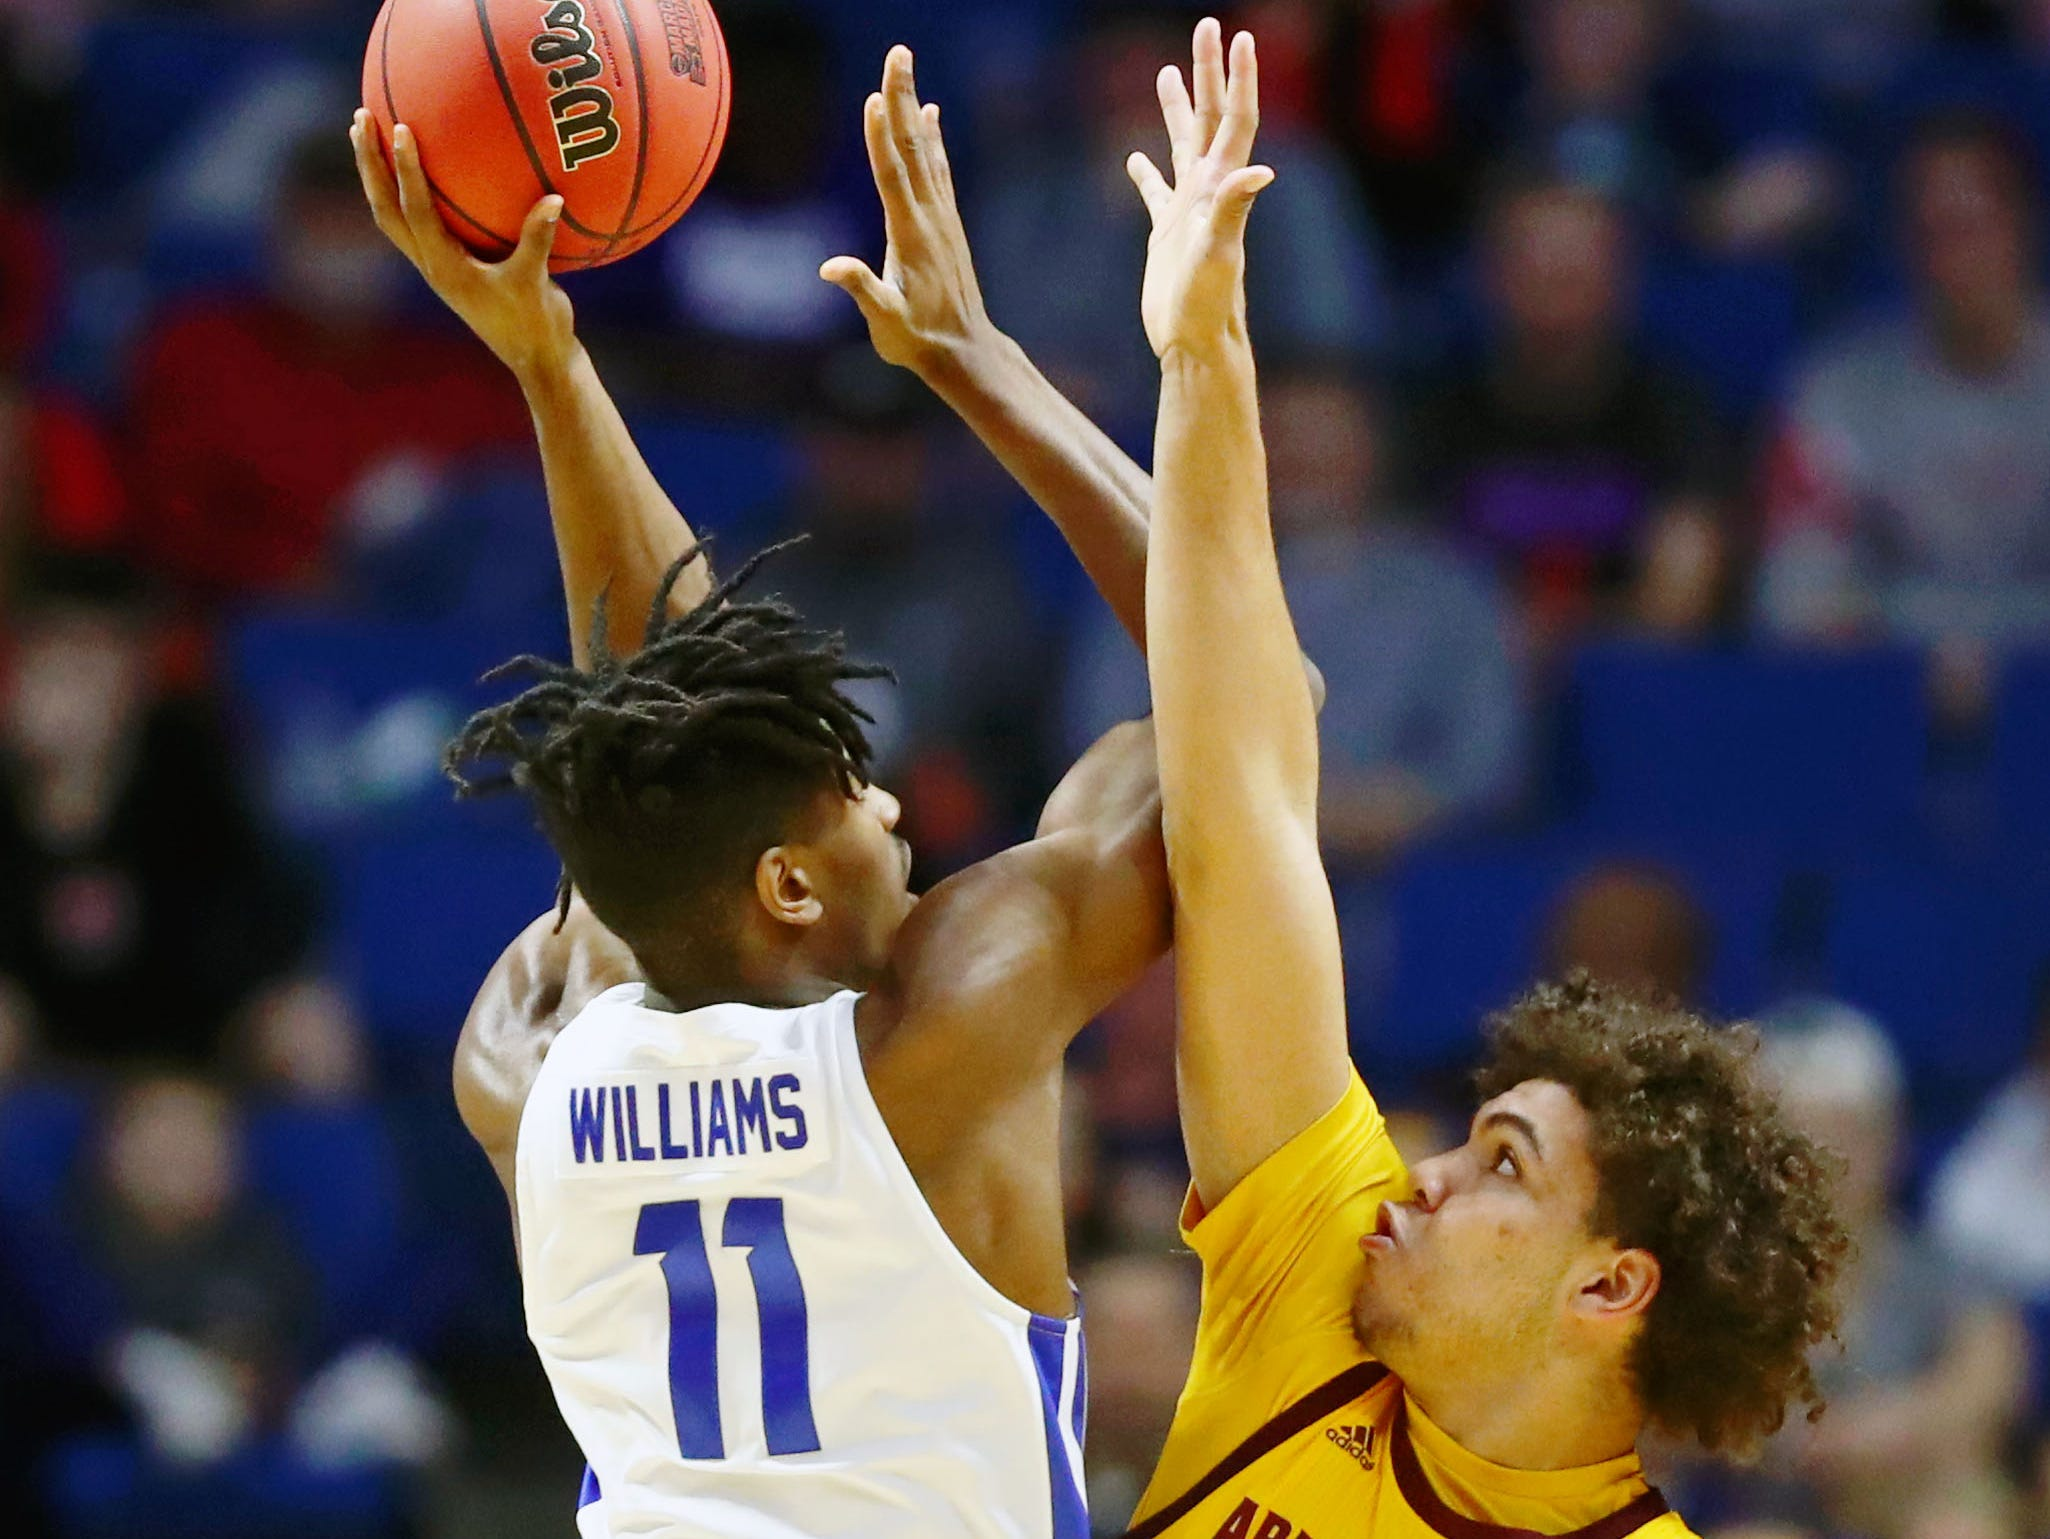 Mar 22, 2019; Tulsa, OK, USA; Arizona State Sun Devils forward Taeshon Cherry (35) attempts to block a shot by Buffalo Bulls forward Jeenathan Williams (11) during the first half in the first round of the 2019 NCAA Tournament at BOK Center. Mandatory Credit: Mark J. Rebilas-USA TODAY Sports